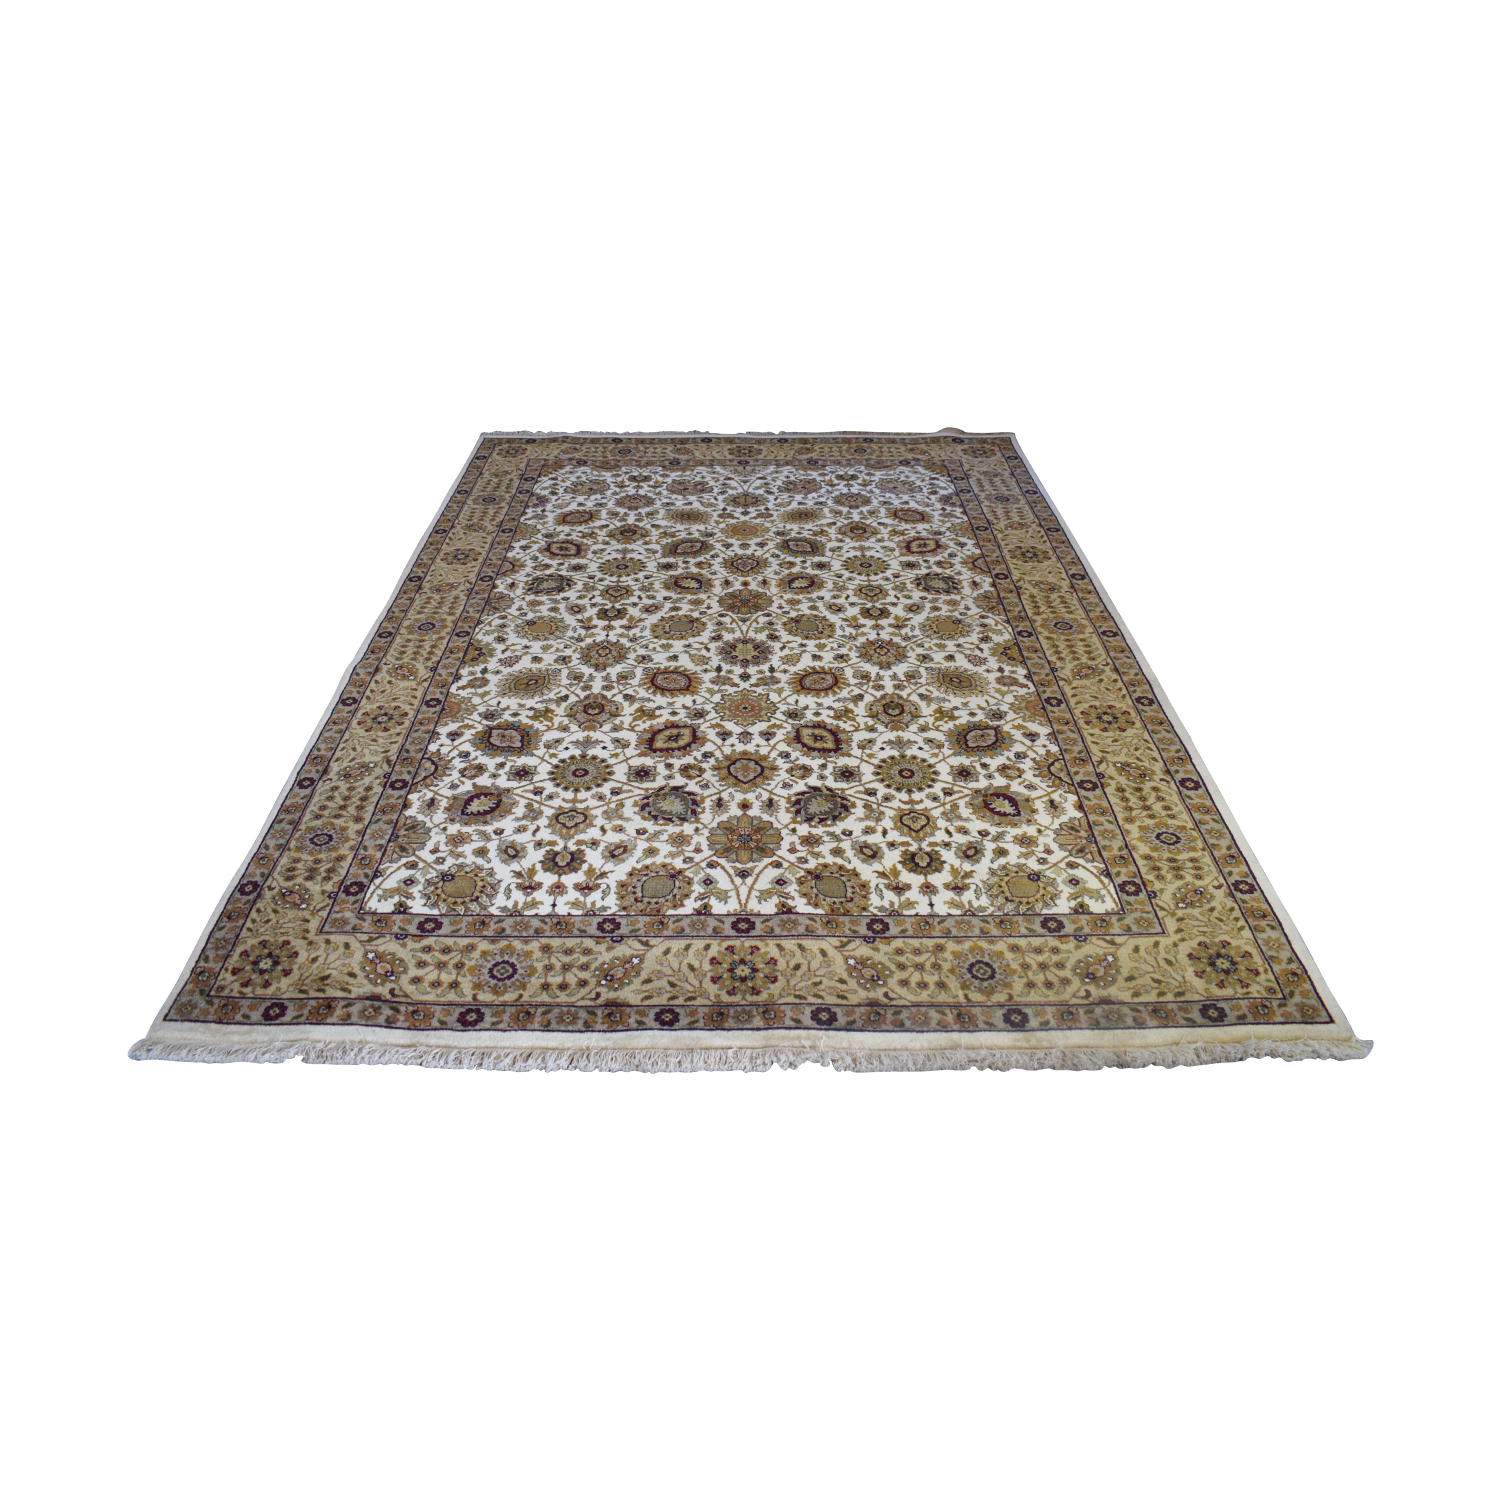 Abu Rugs and Home Abu Rugs and Home Beige Floral Oriental Rug for sale